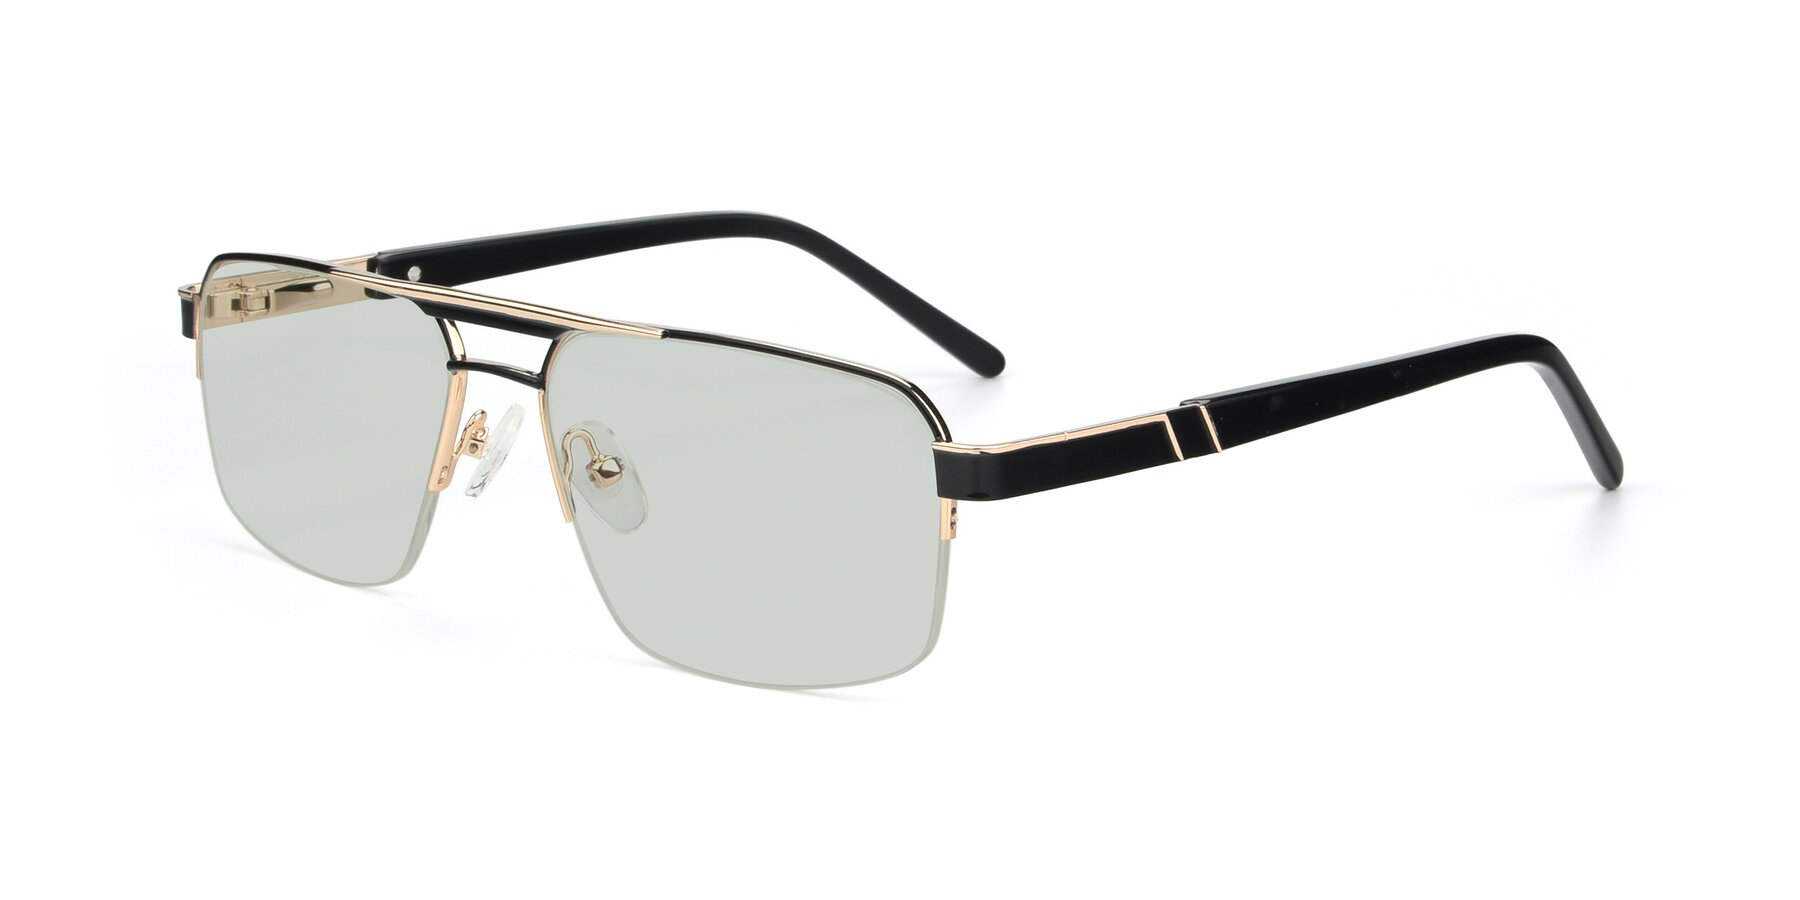 Angle of 19004 in Black-Gold with Light Green Tinted Lenses